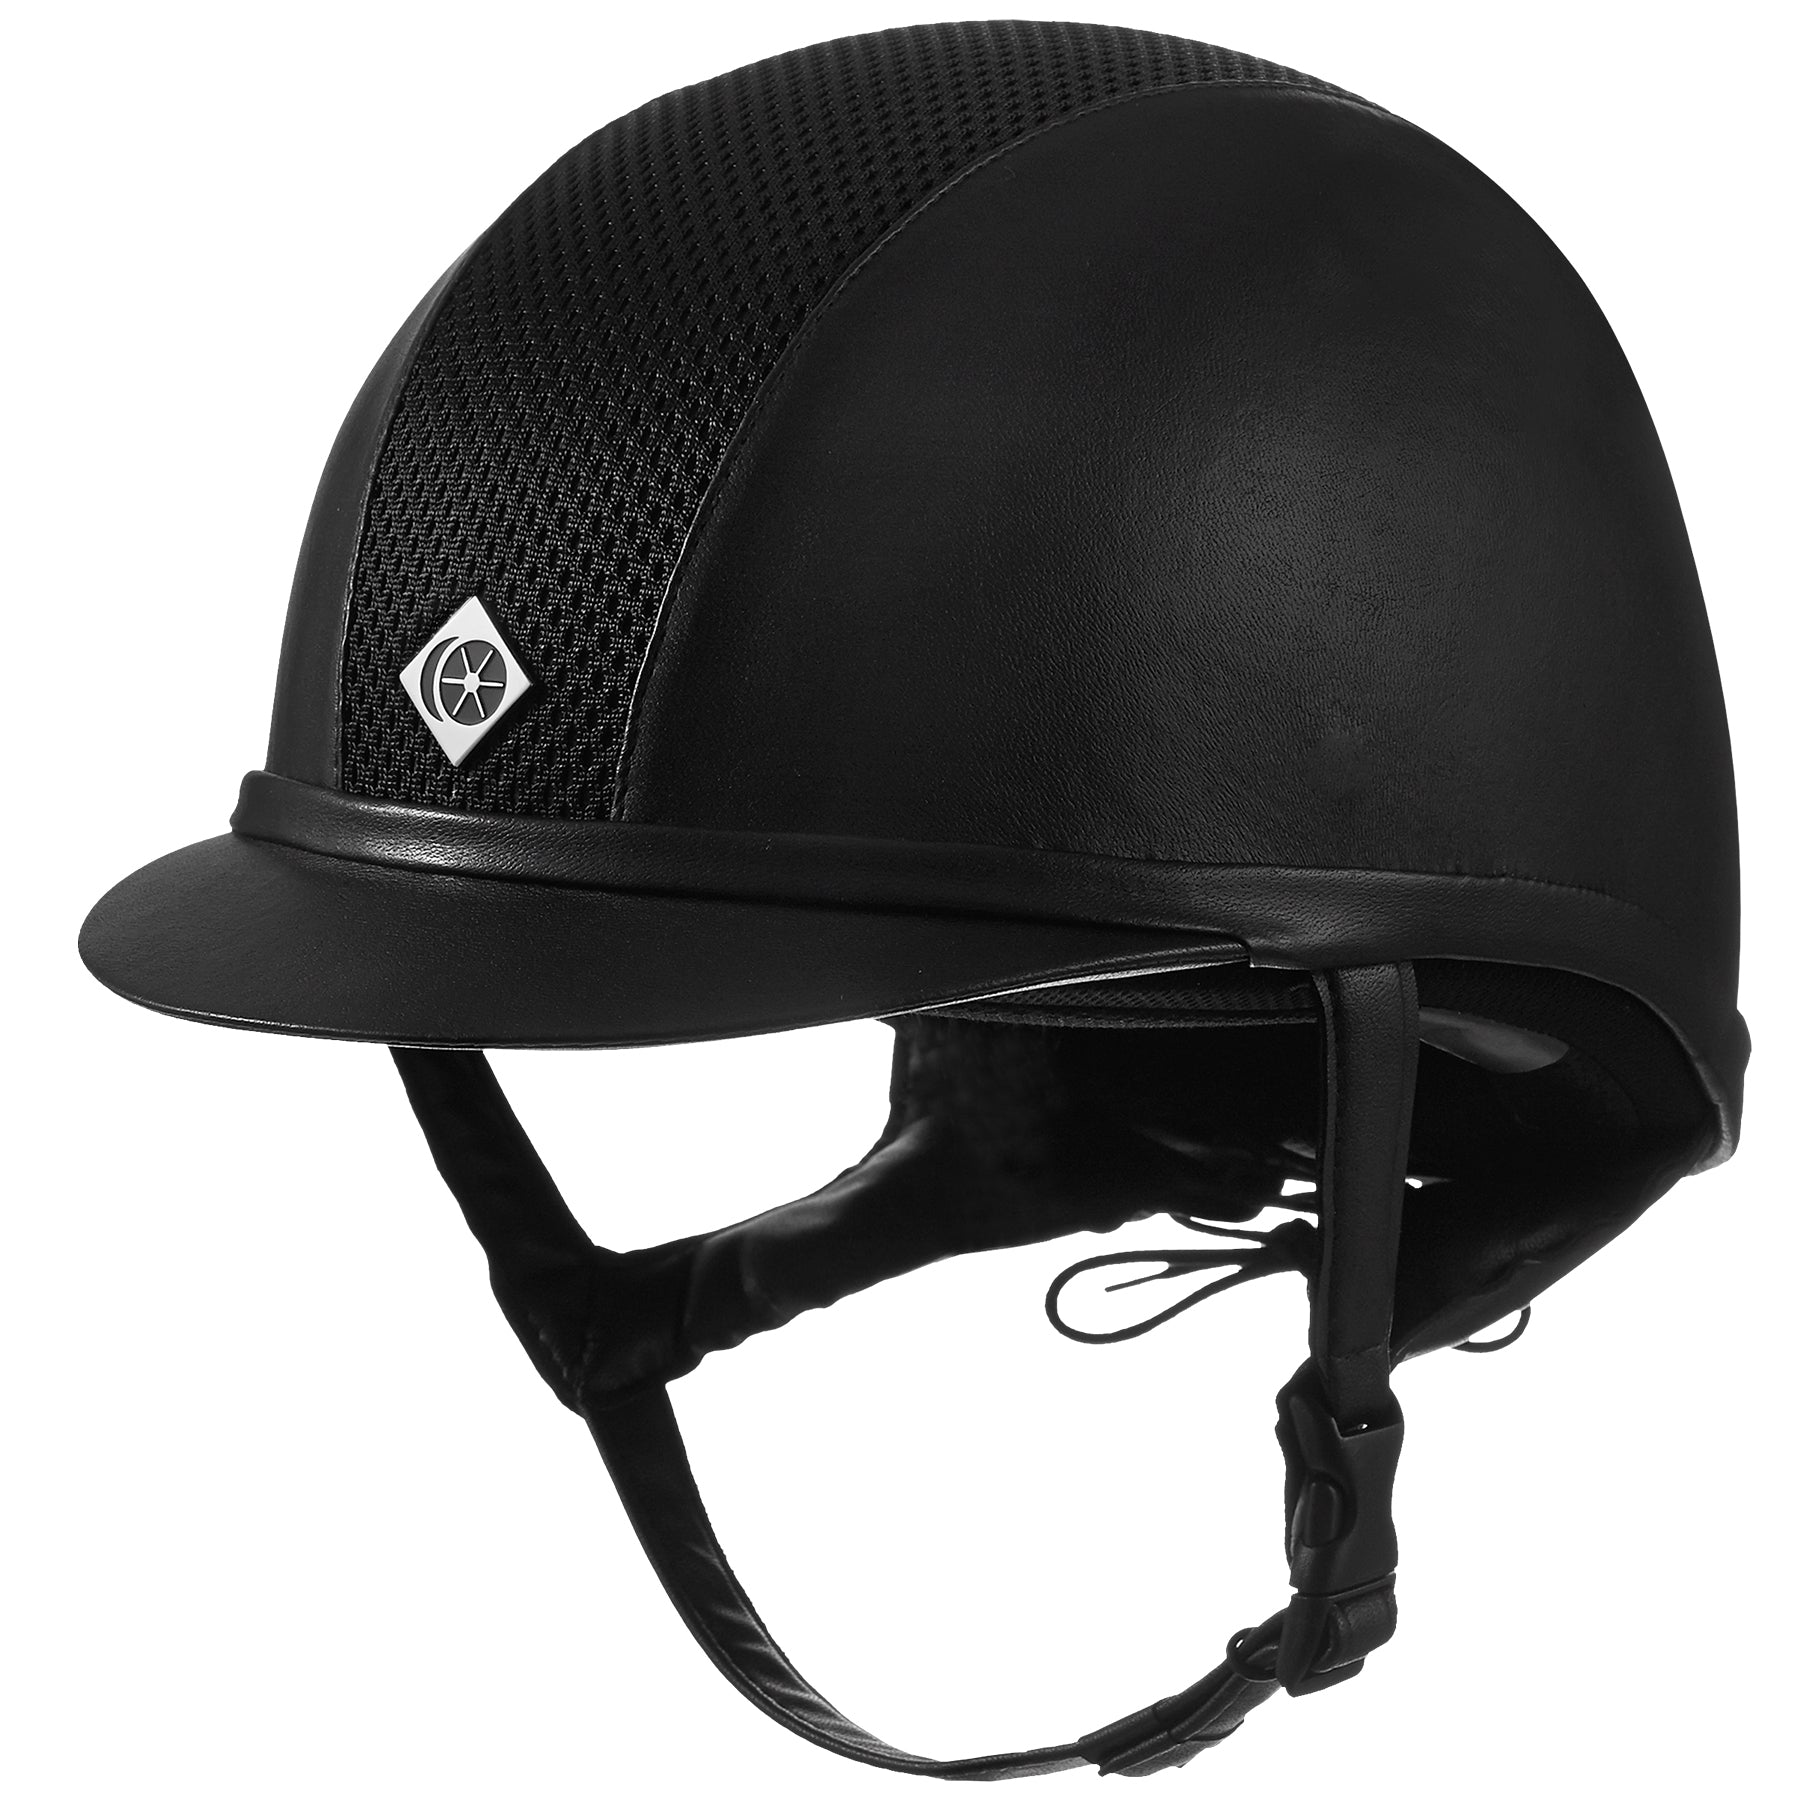 Fair Price Equestrian | Charles Owen Ayr8 Plus Leather Look Round Fit Sizes Riding Helmet